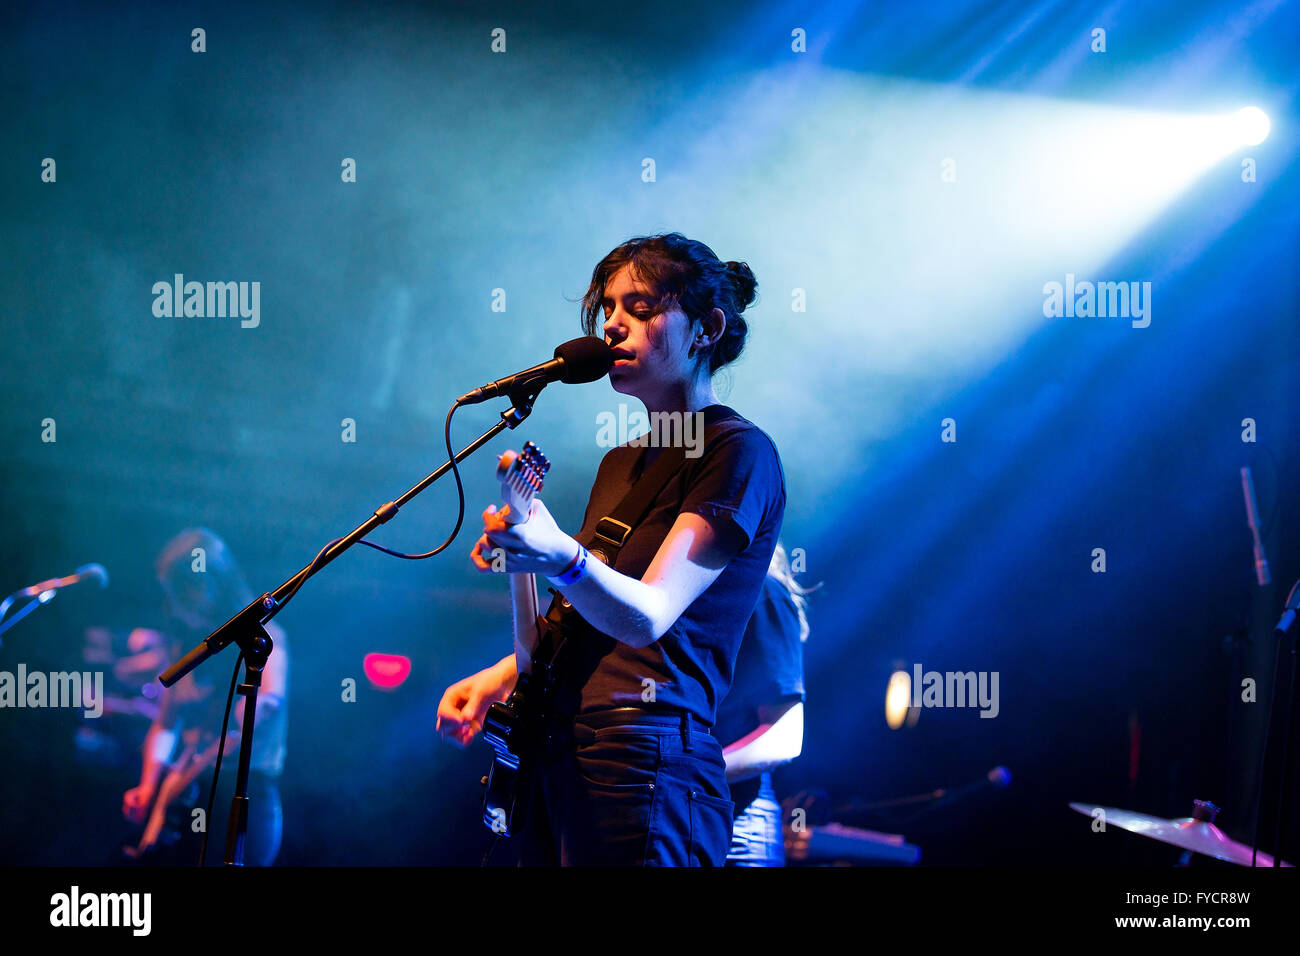 BARCELONA - FEB 8: Mourn (band) performs at Apolo venue on February 8, 2015 in Barcelona, Spain. - Stock Image